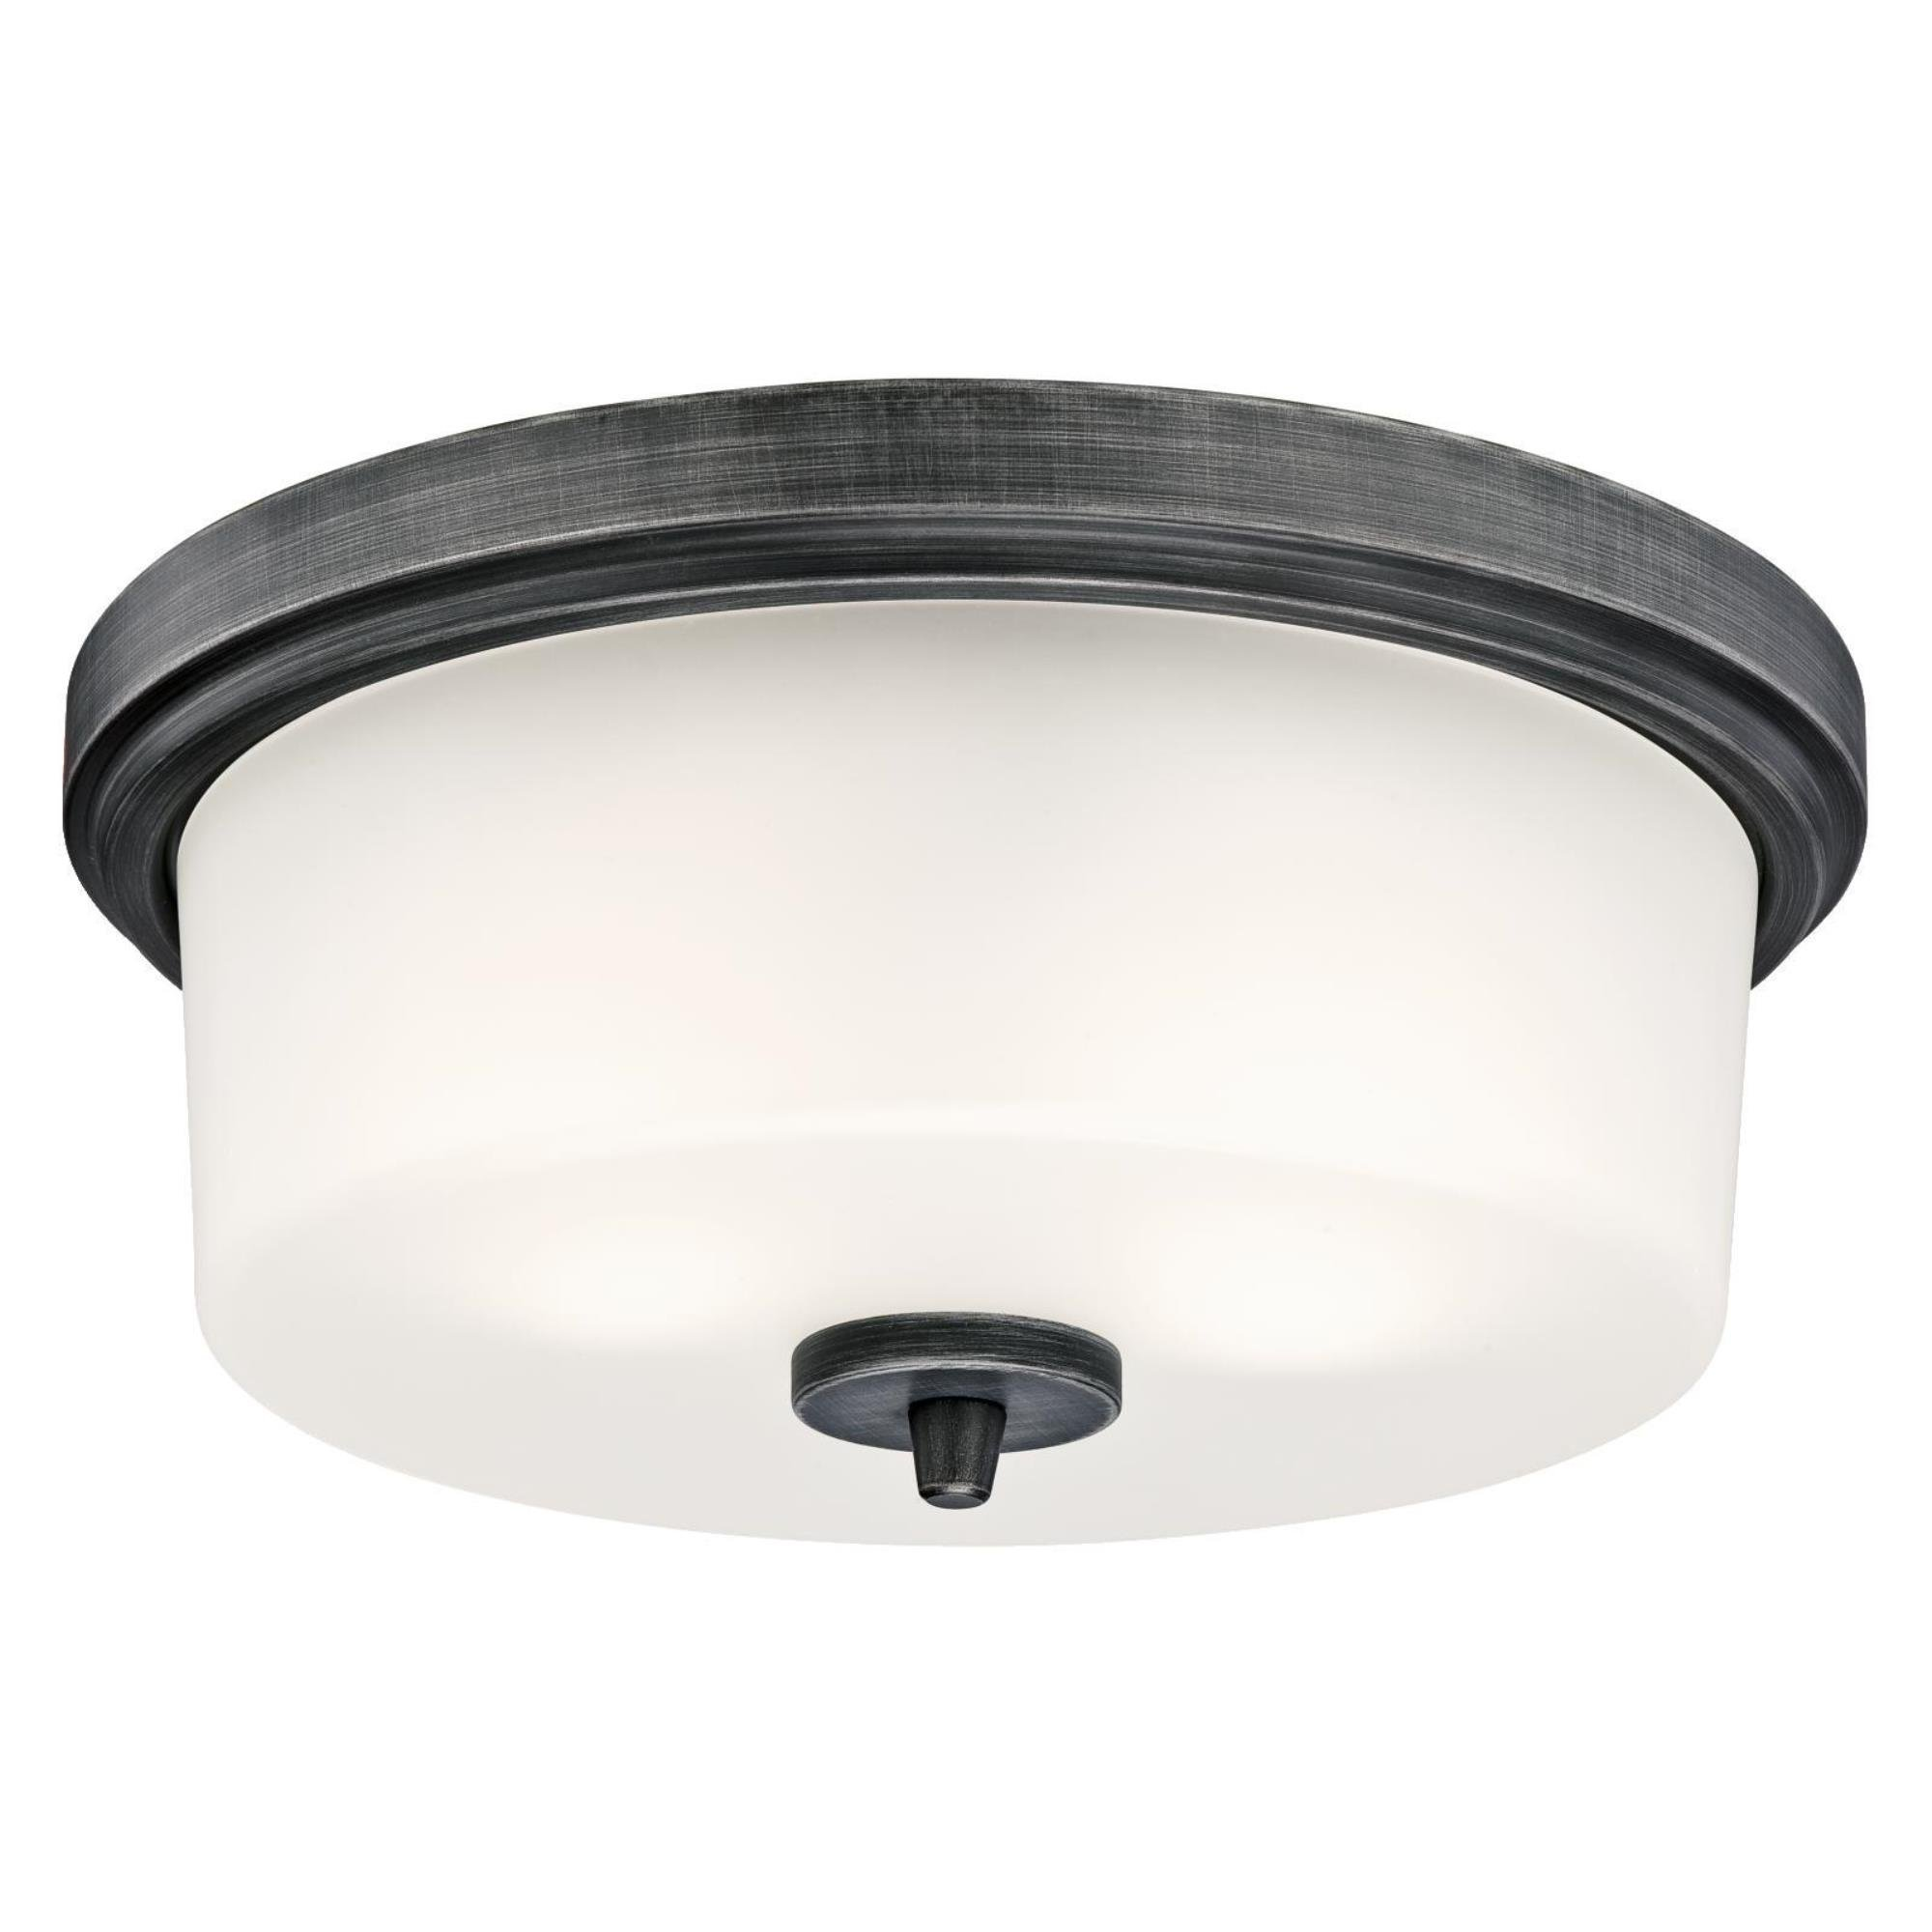 Westinghouse 6325100 Courtfield Two-Light Indoor Flush-Mount Ceiling Fixture, Distressed Aluminum Finish with Frosted Glass